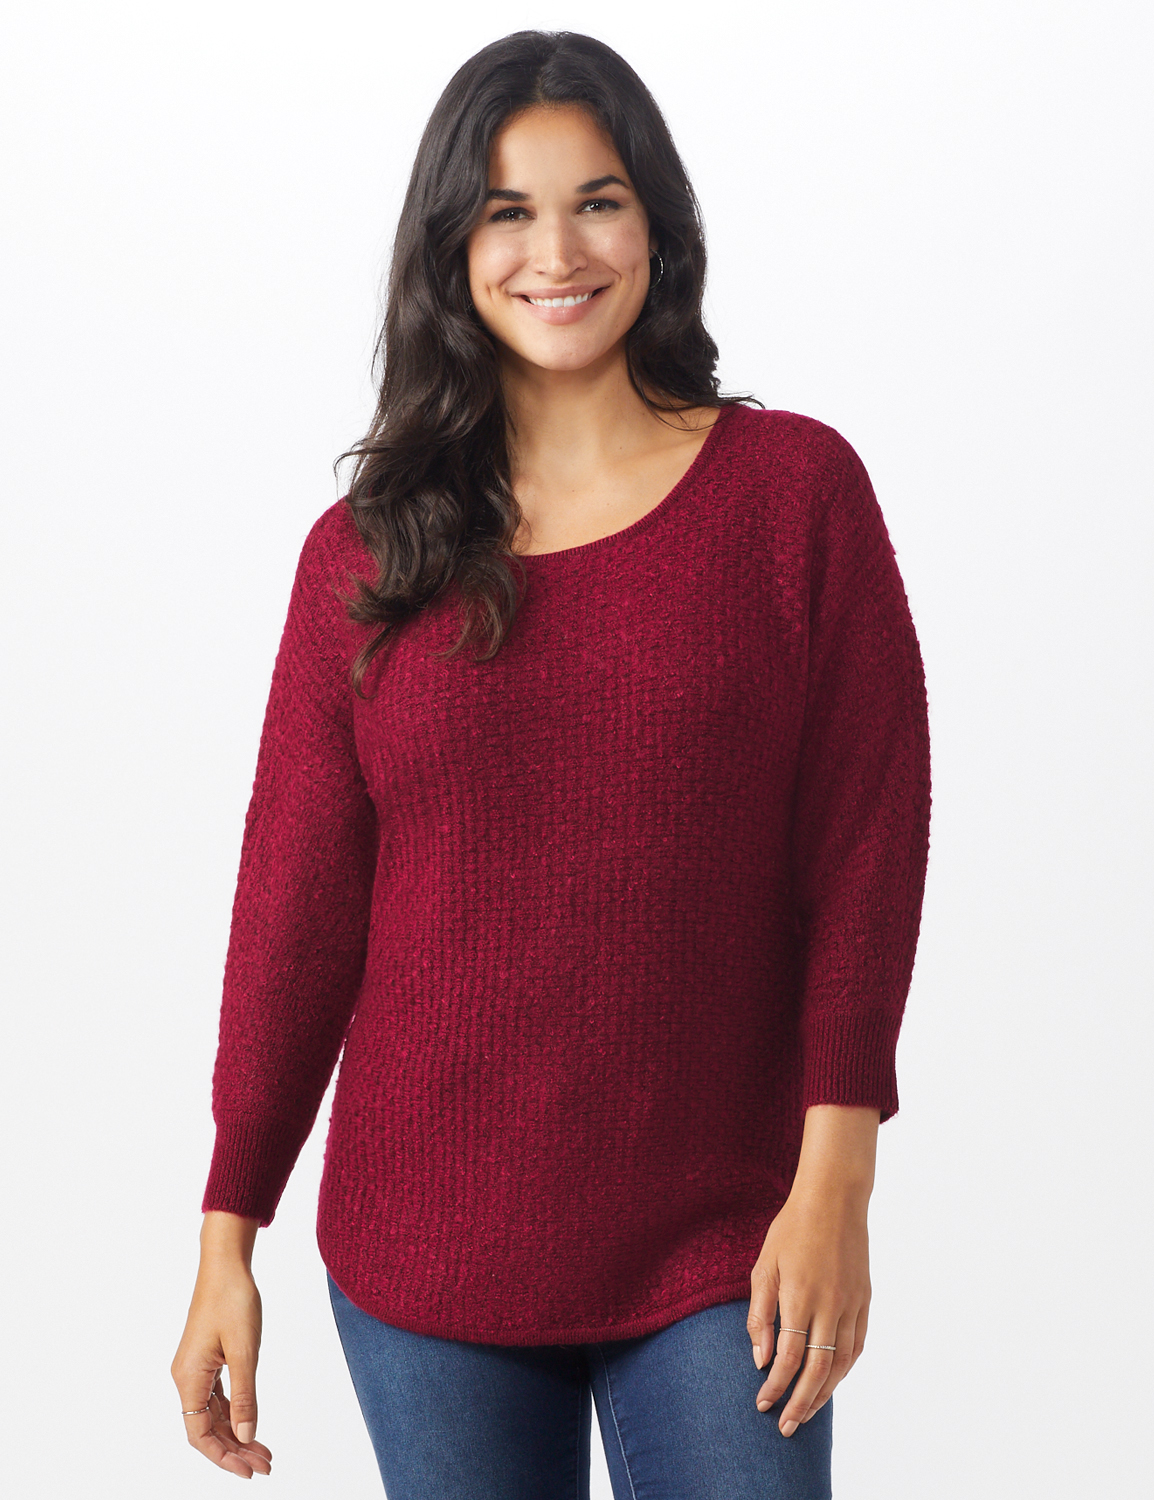 Westport Basketweave Stitch Curved Hem Sweater - Misses -Red - Front